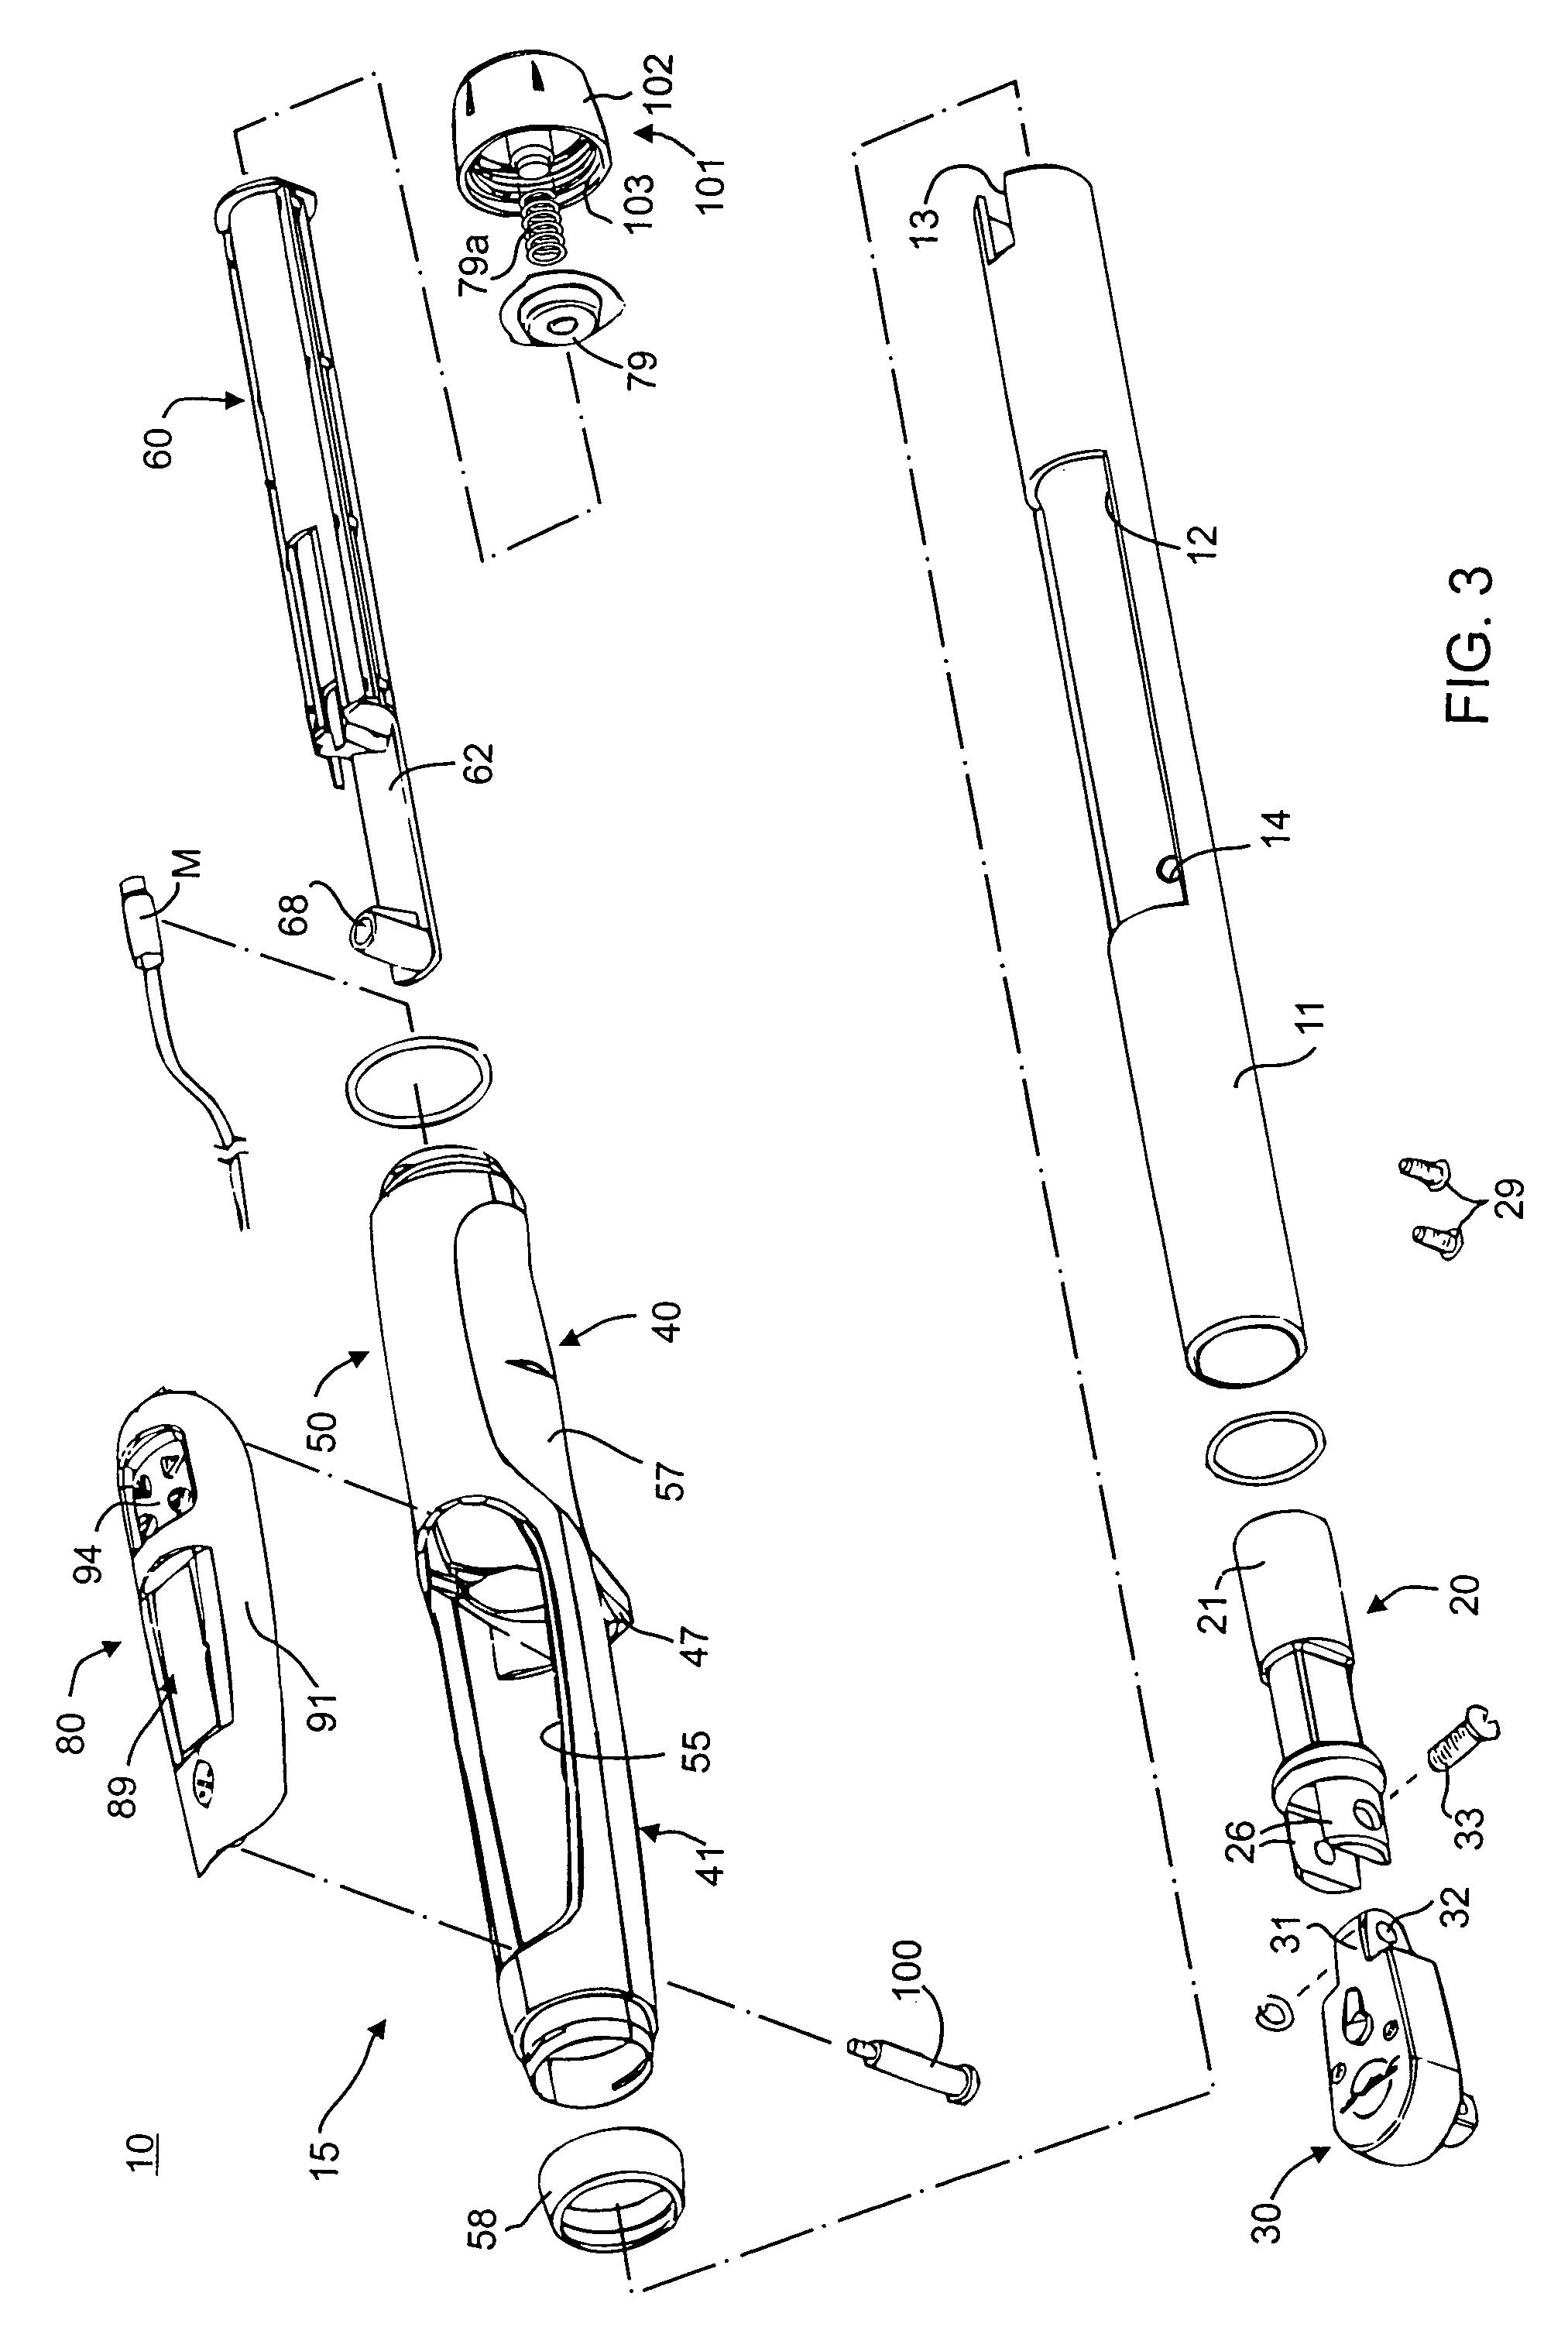 Patent US6981436 - Electronic torque wrench - Google Patents